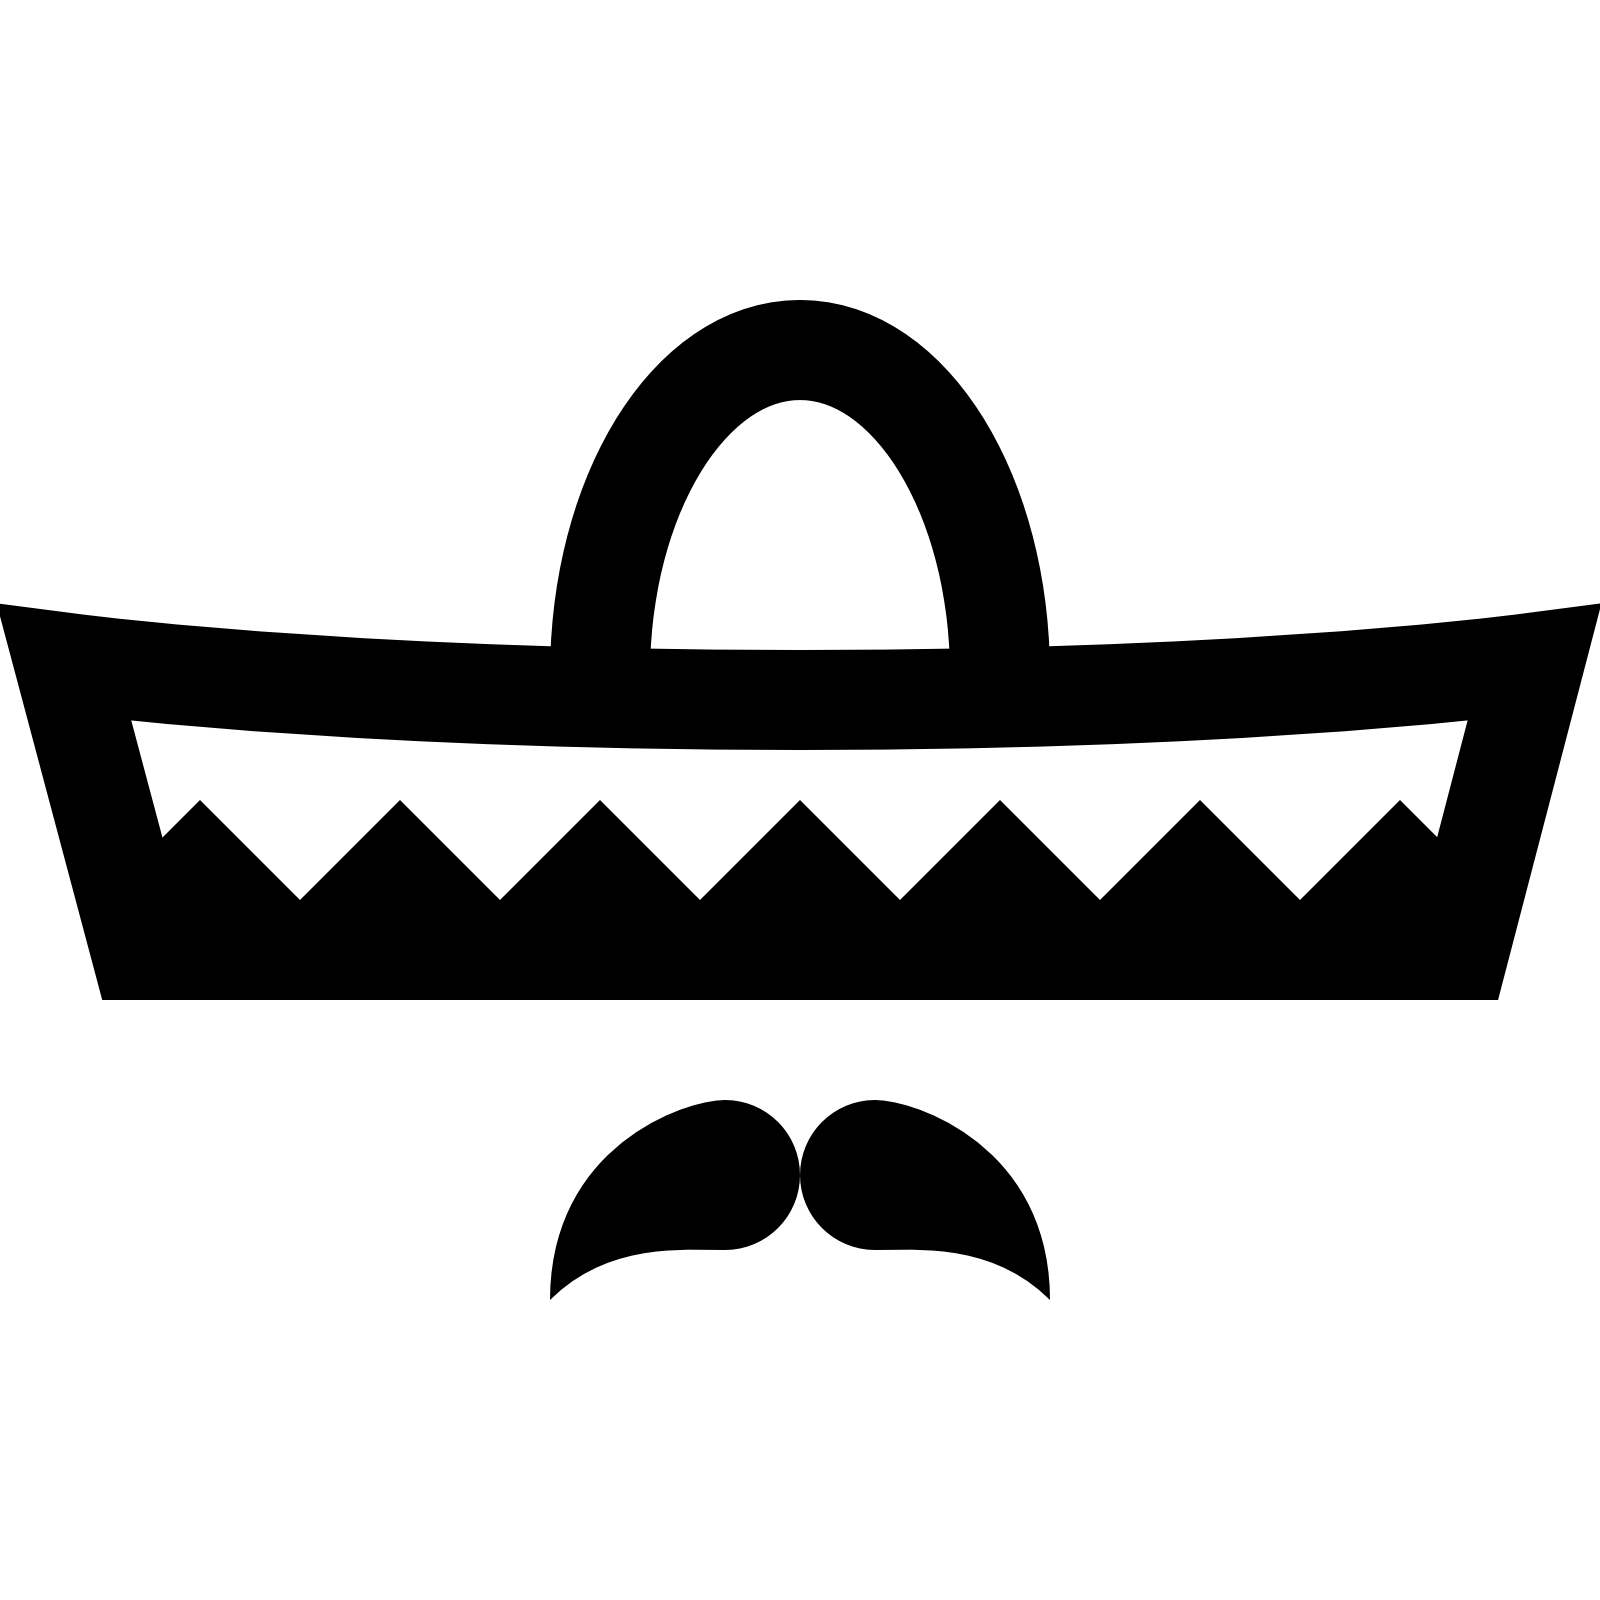 Moustache clipart sombrero. Pictures group icon free